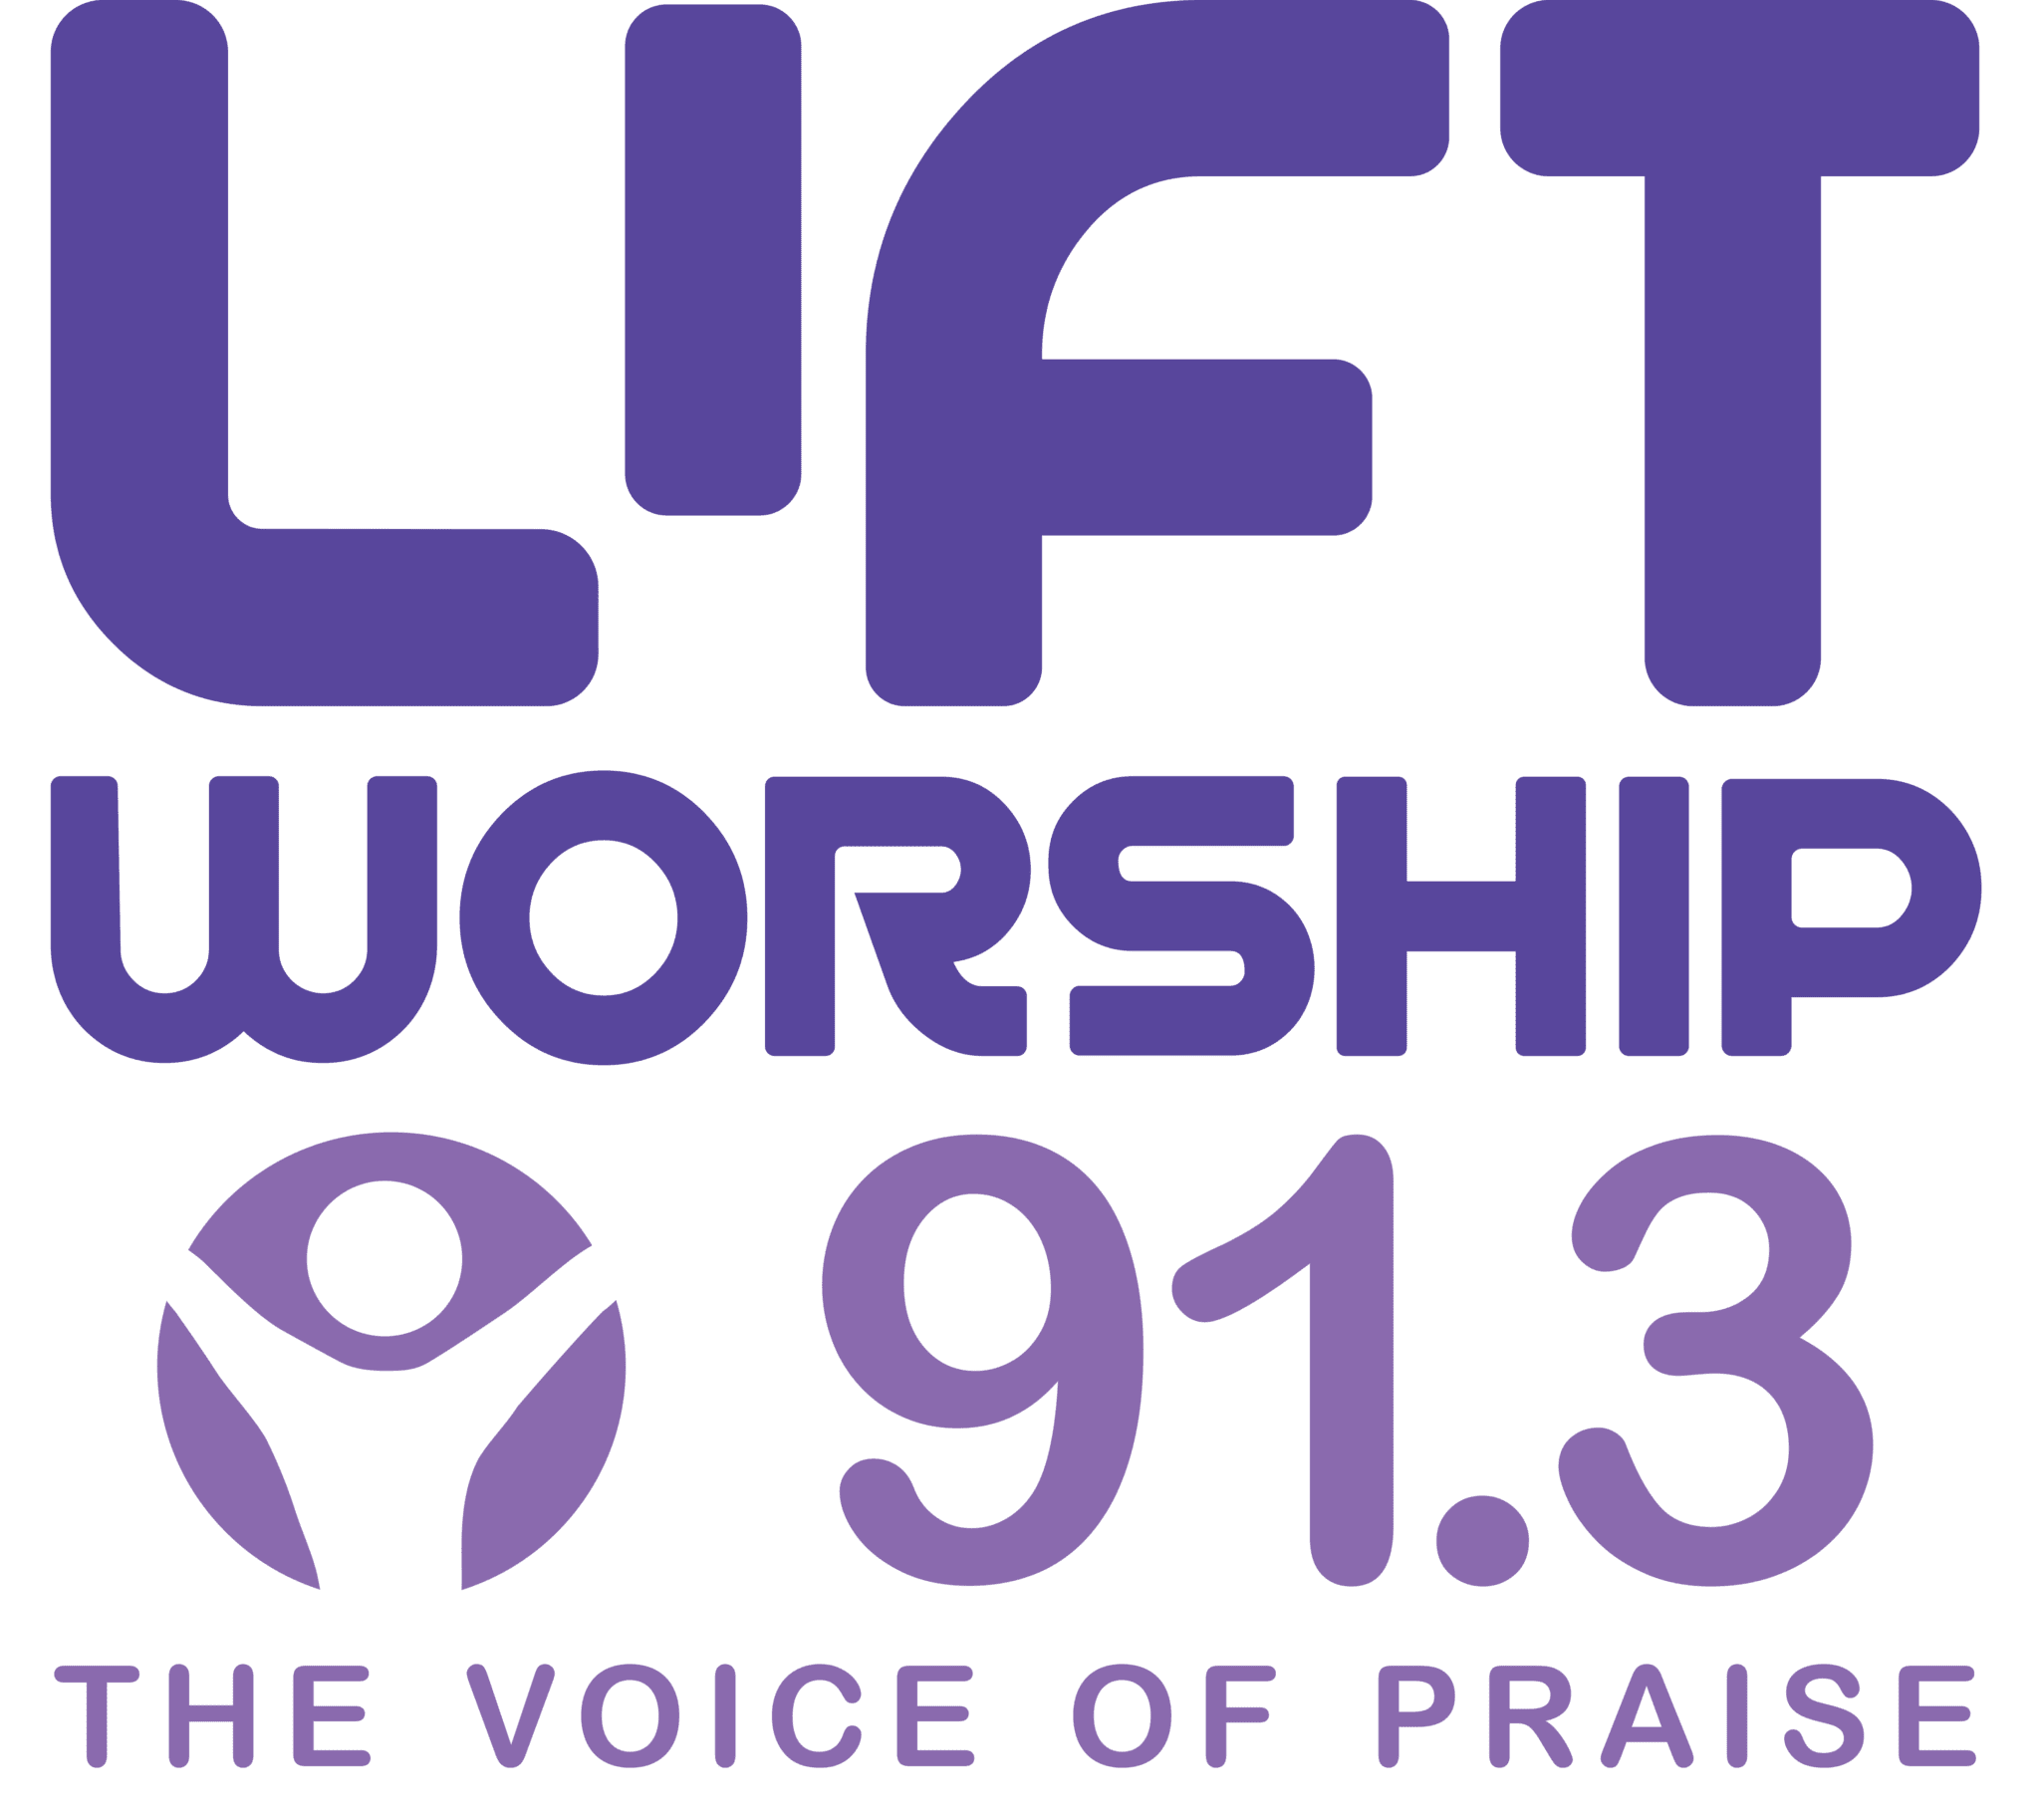 Lift 91.3 The Voice of Worship